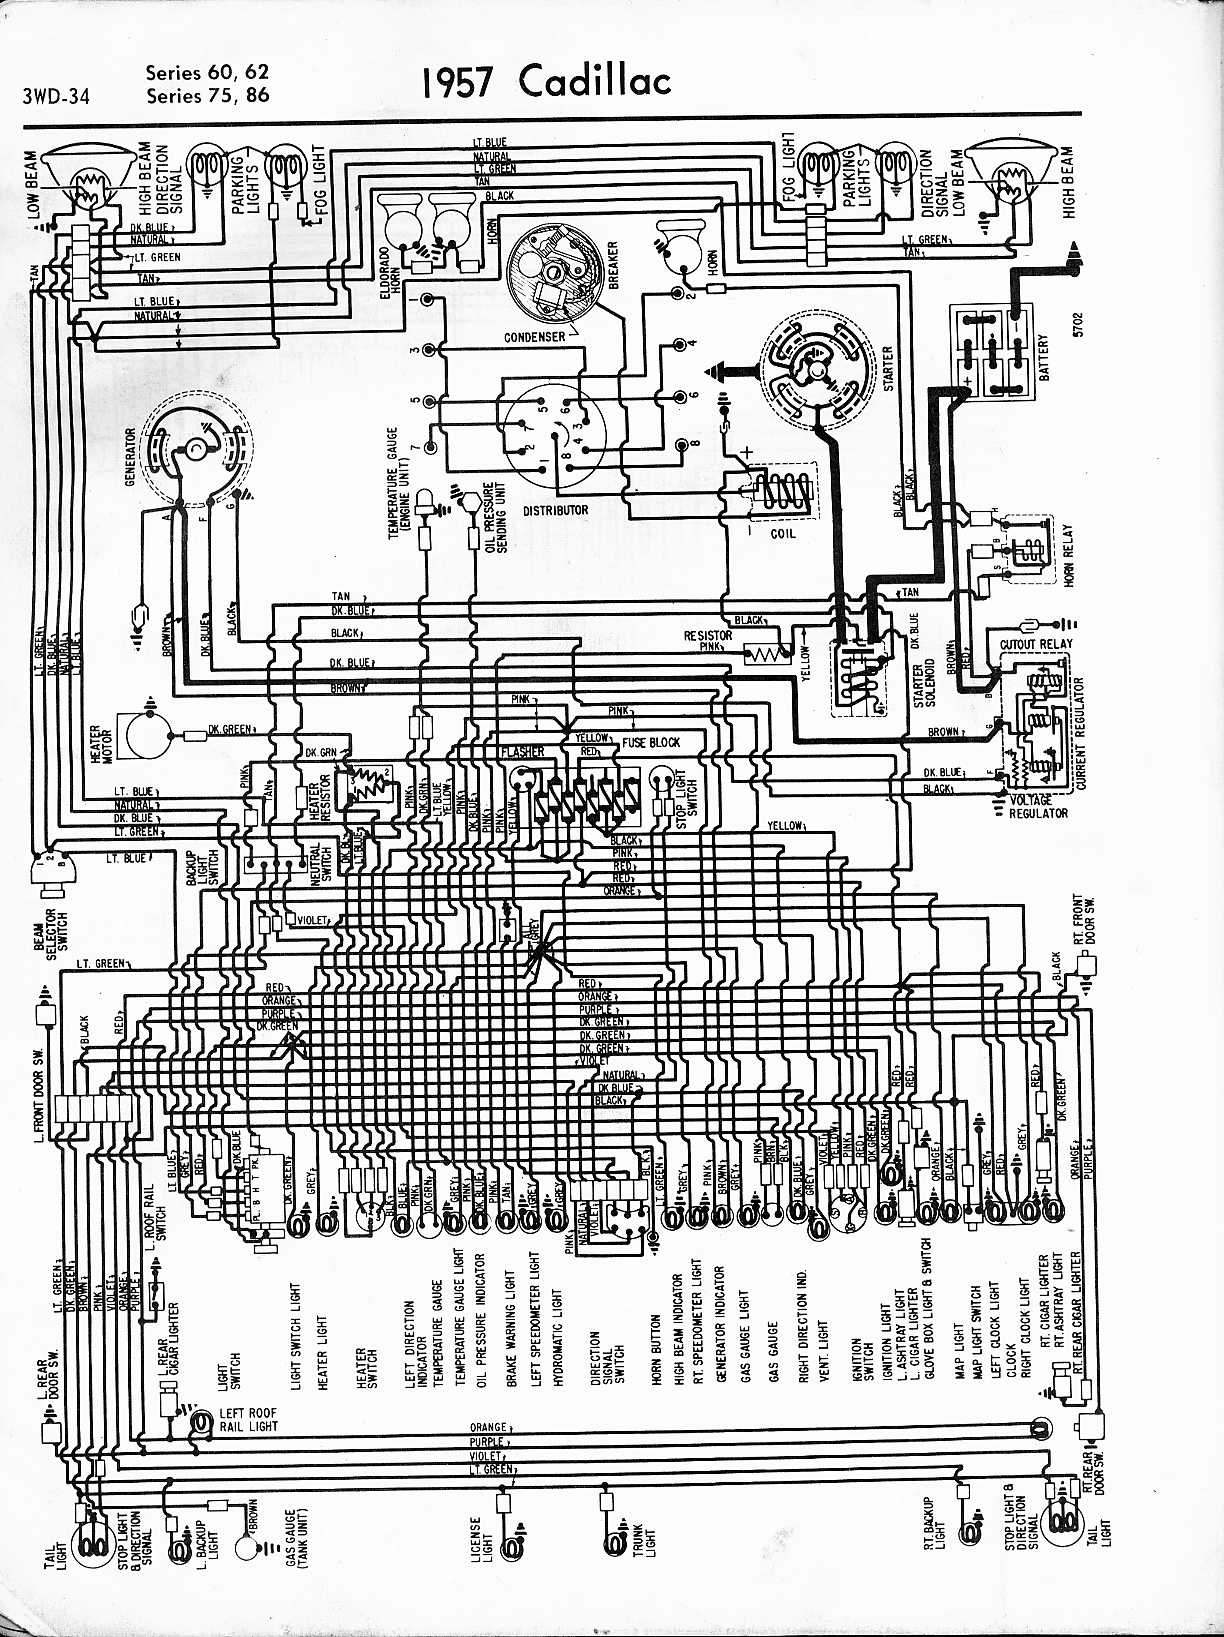 Stunning Gmos-06 Wiring Diagram Photos - Everything You Need to Know ...